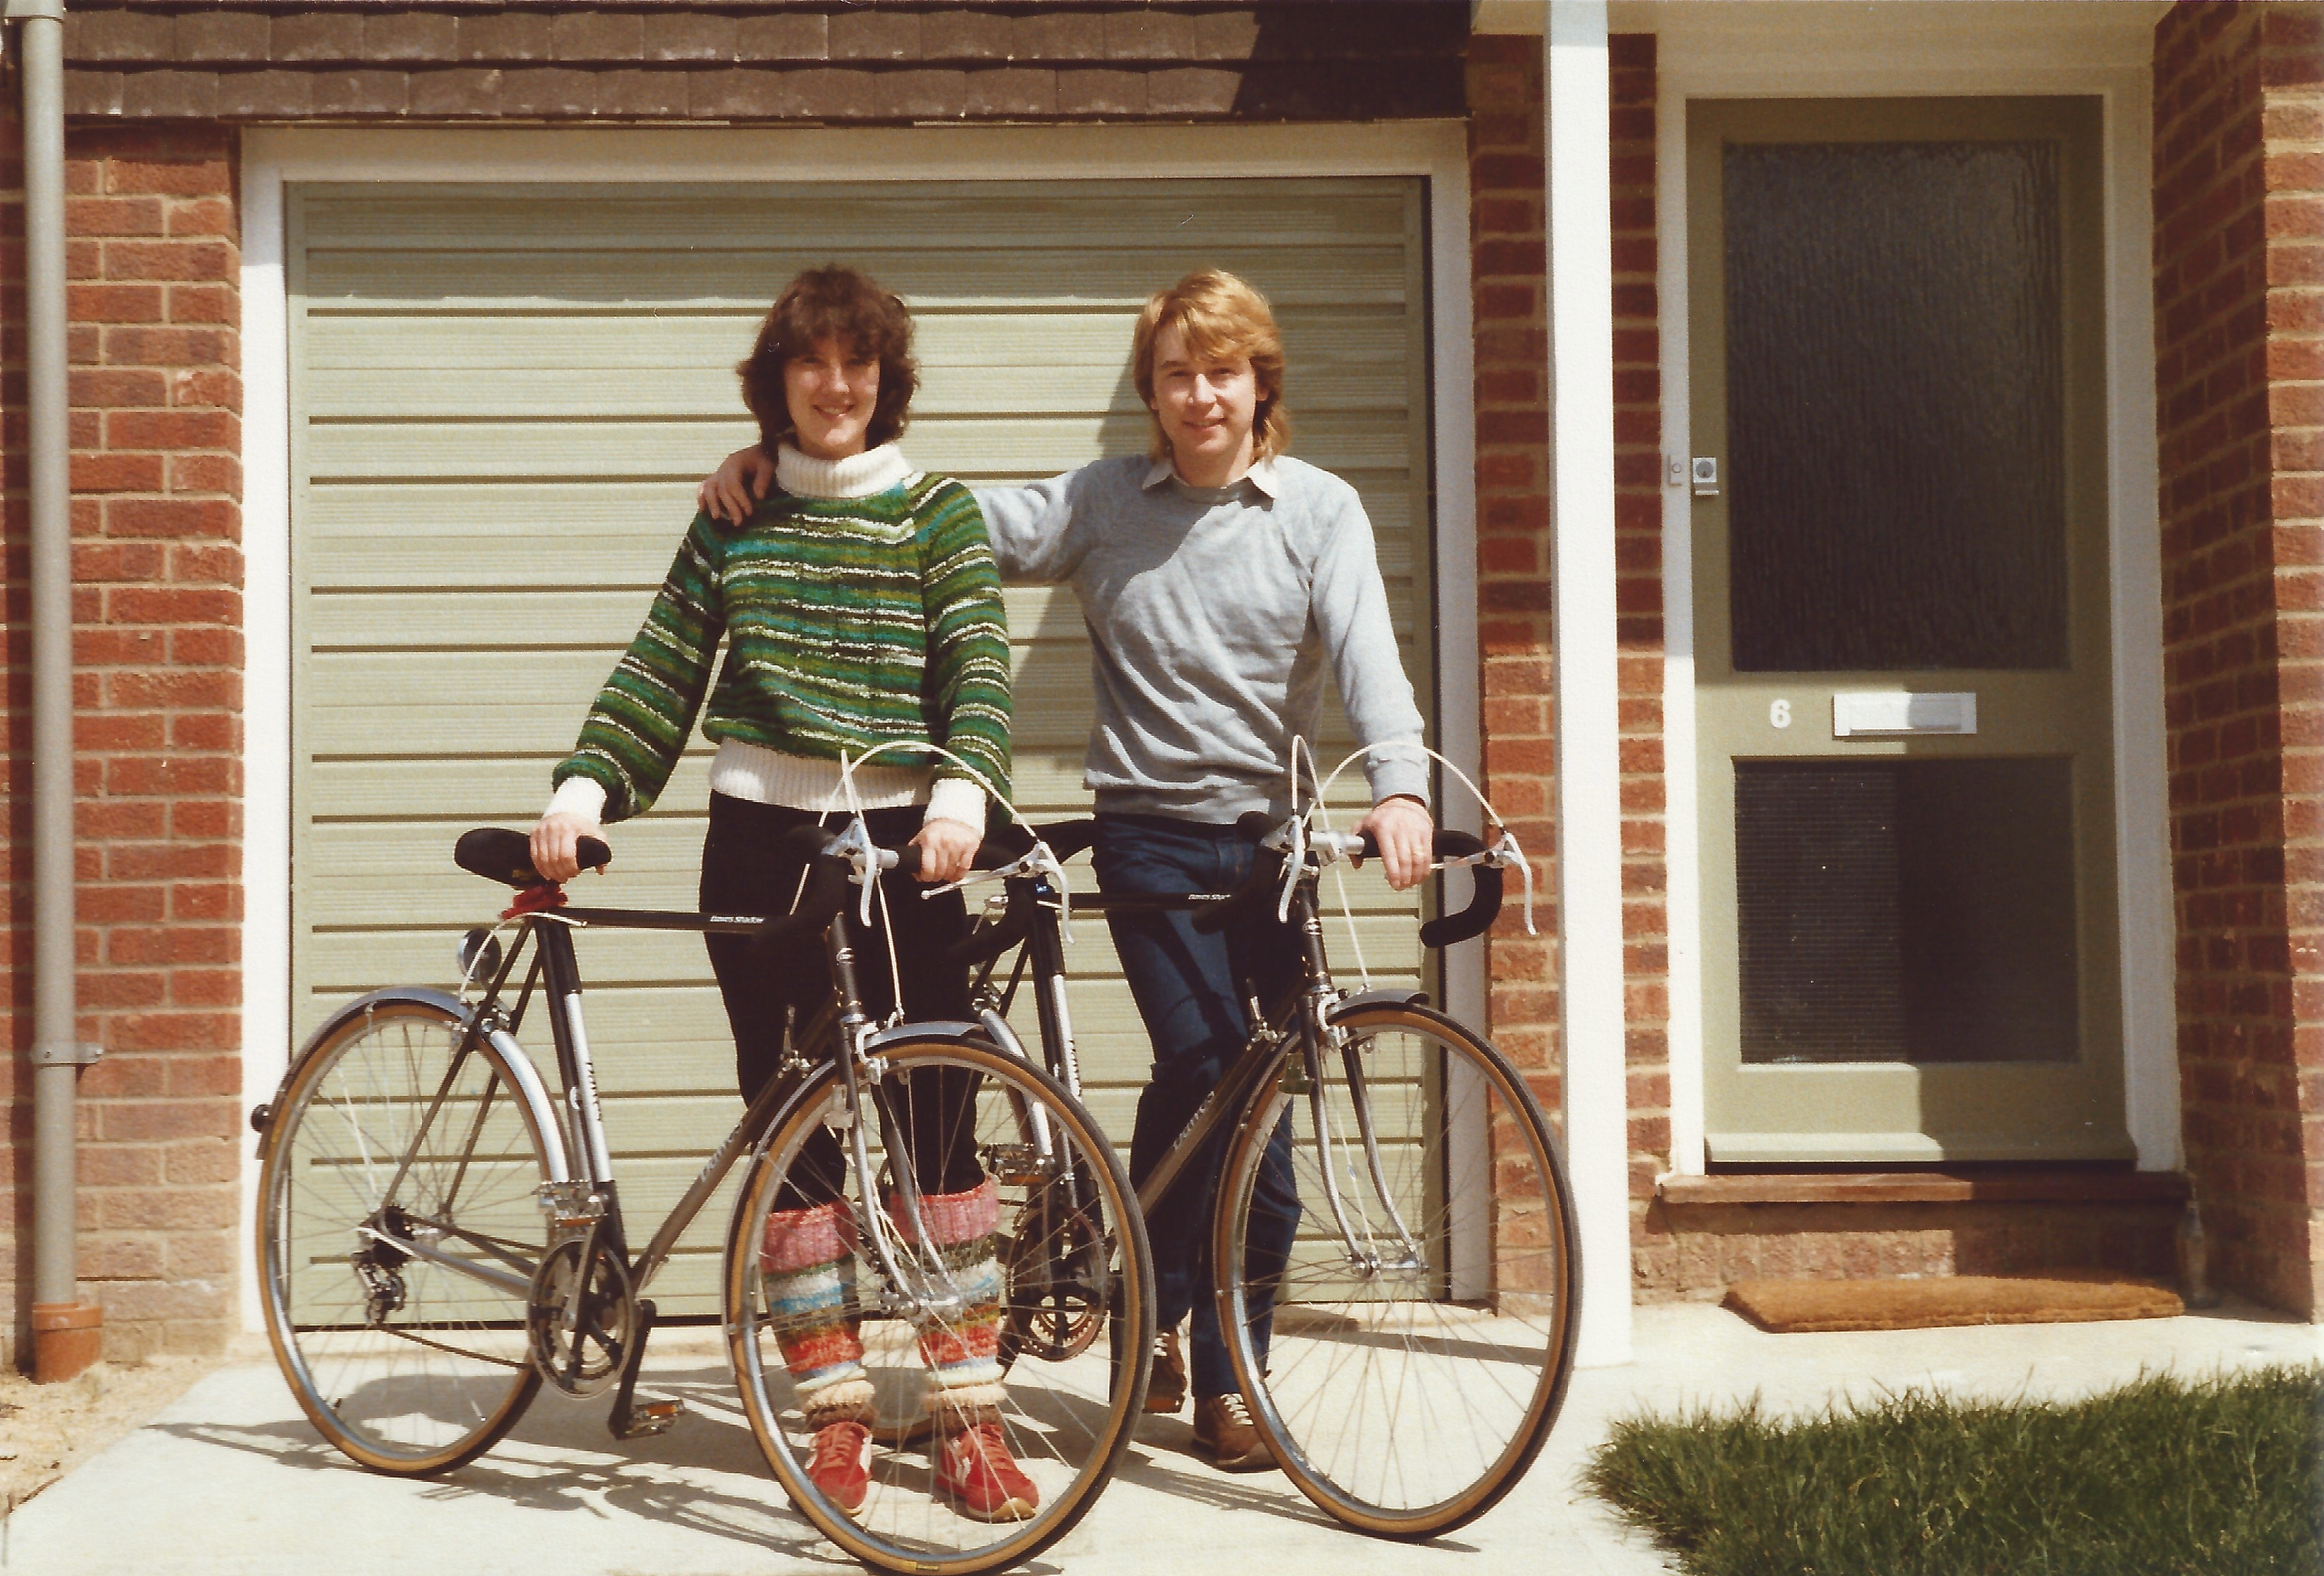 Lynda & Vince with Dawes Shadow bikes